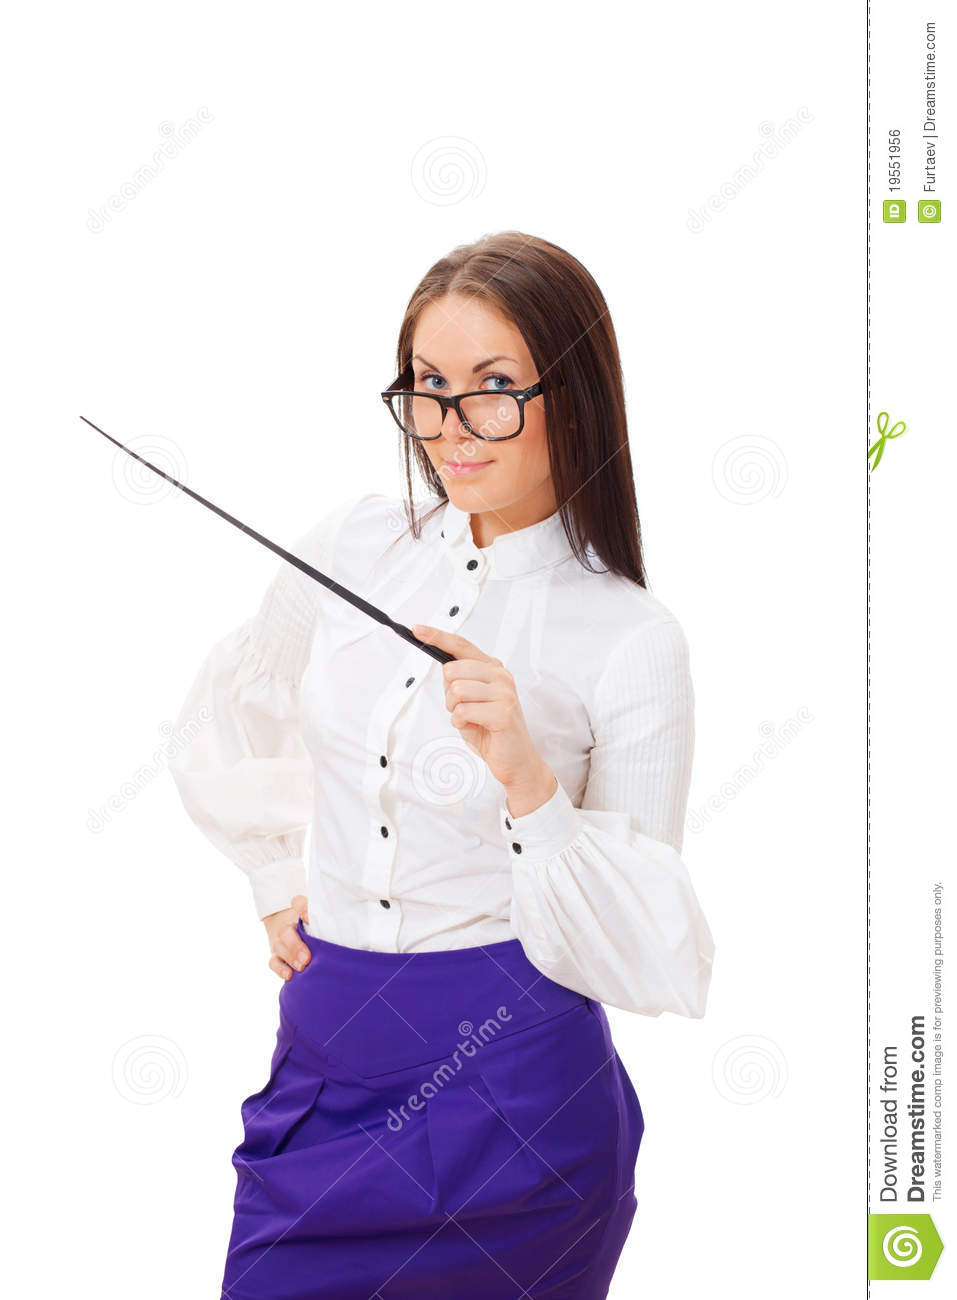 Pretty Teacher With Pointer Royalty Free Stock Image - Image 19551956-2989